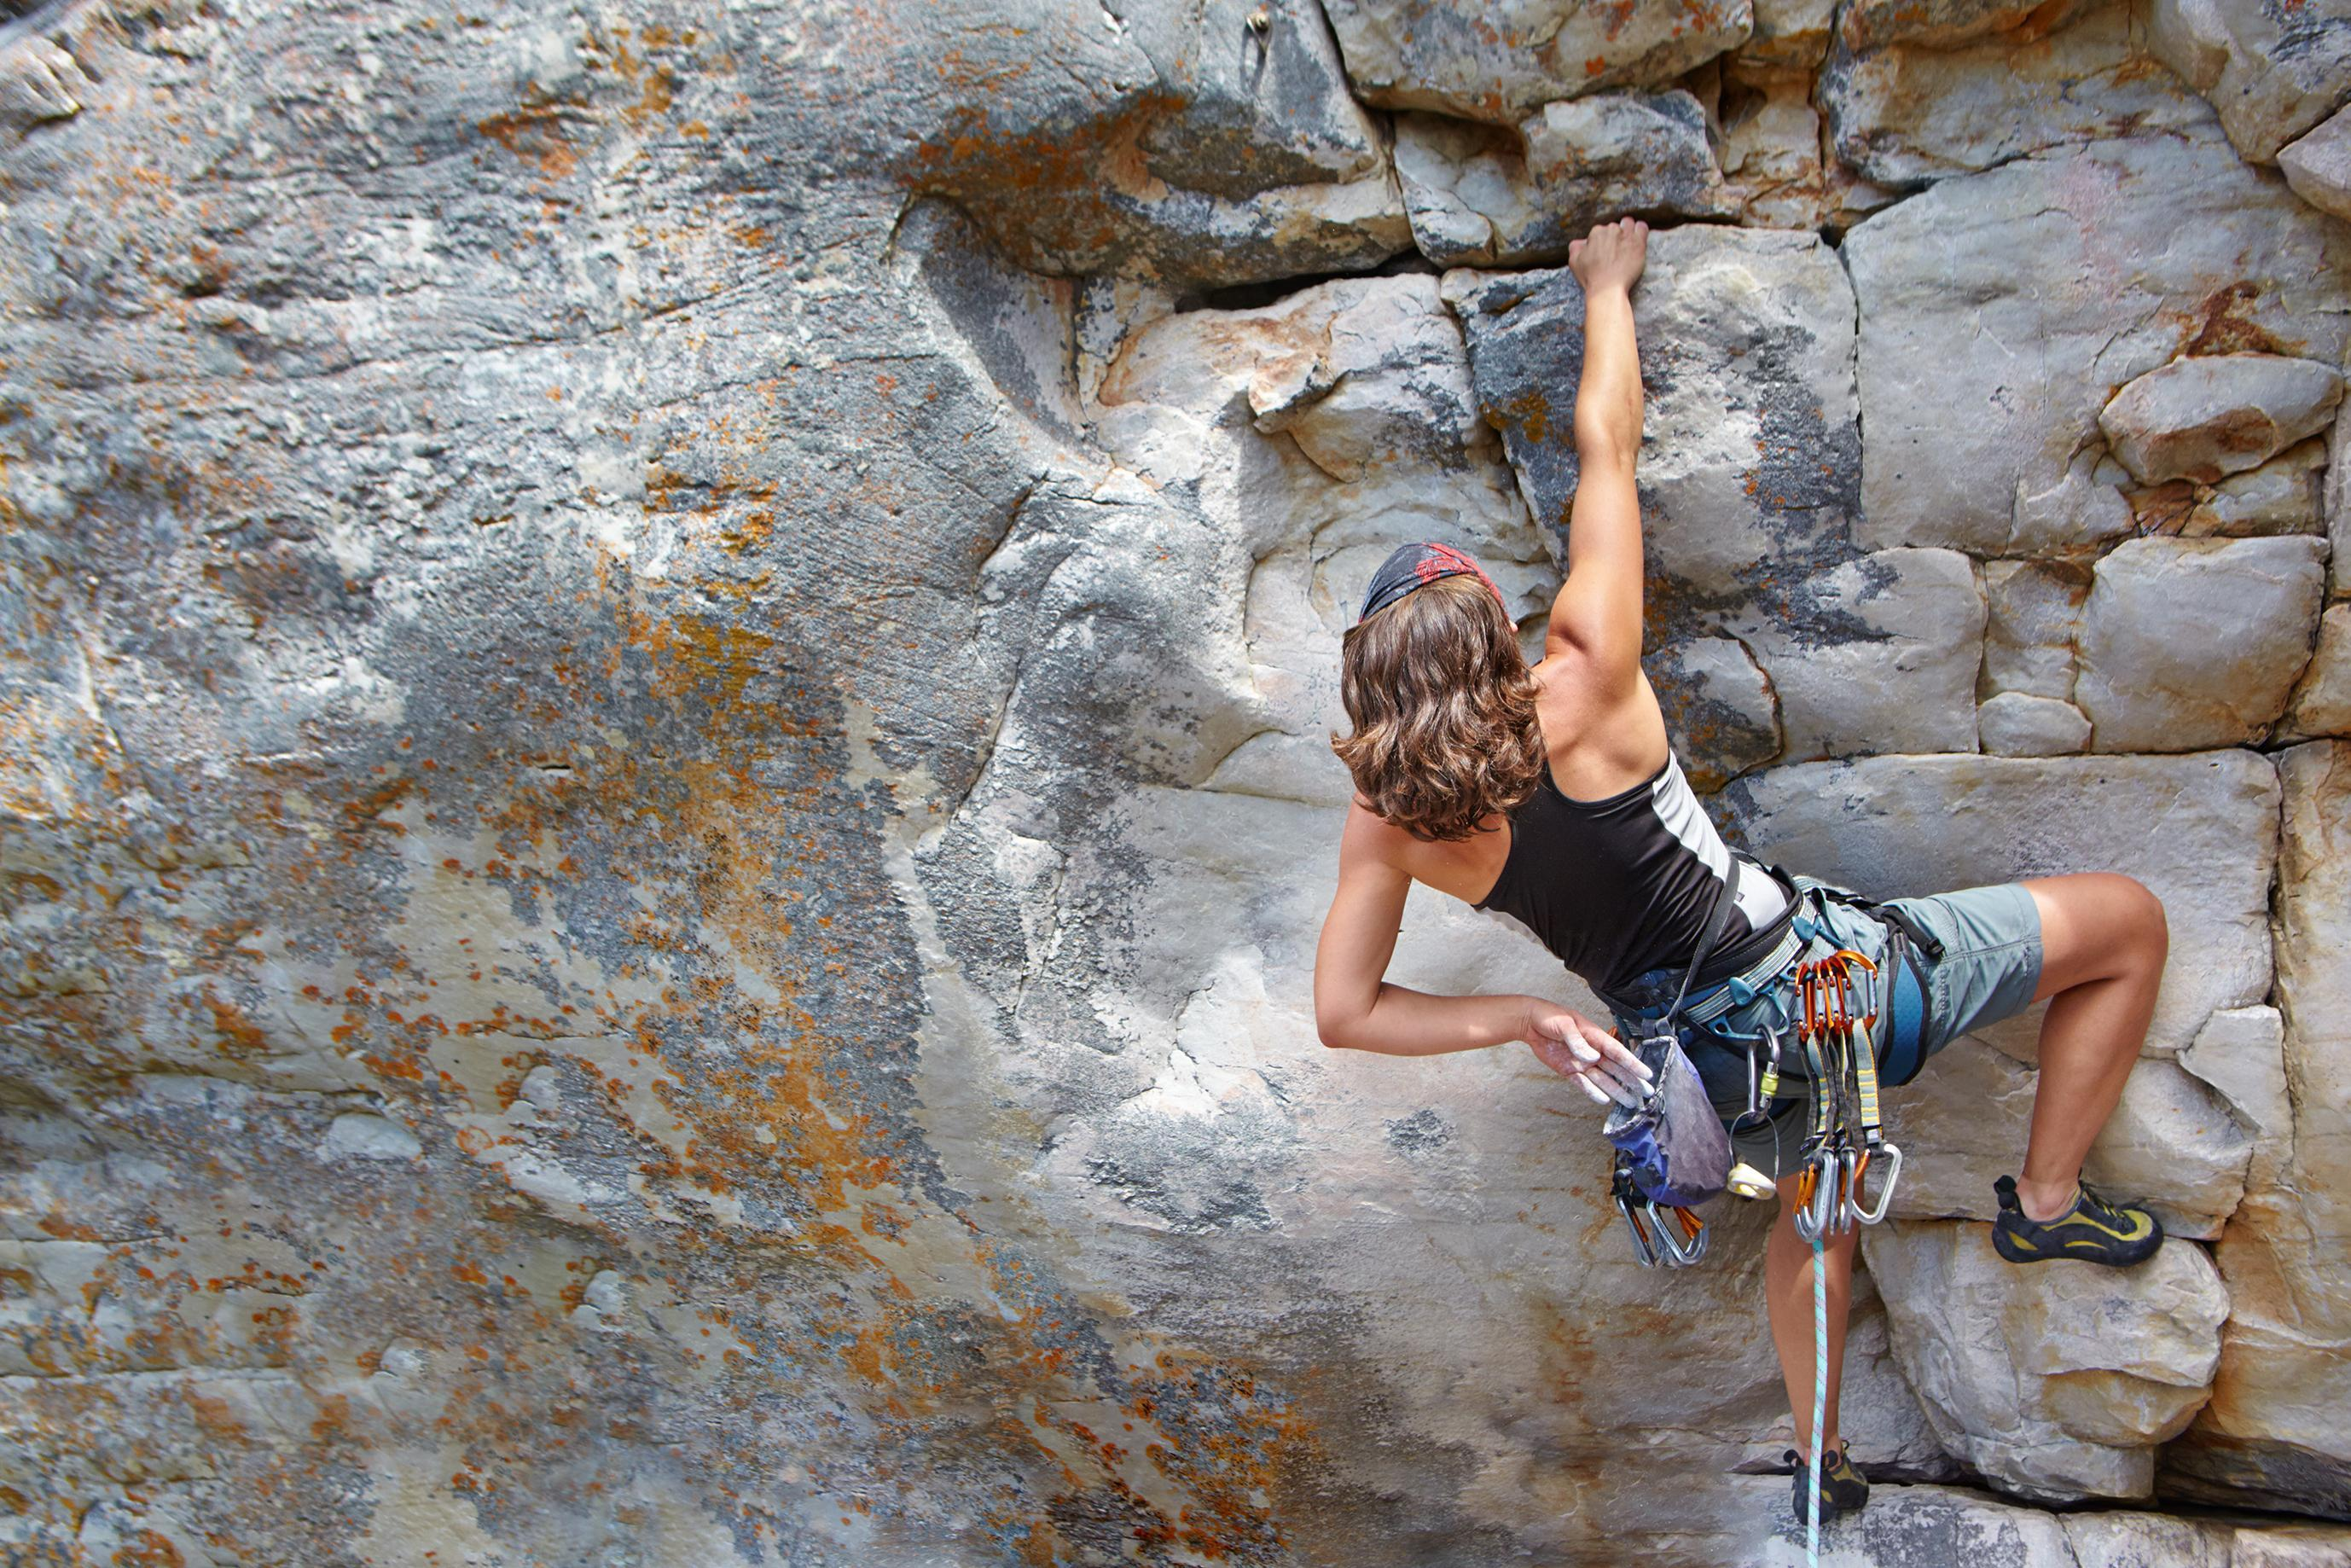 Female_Rock_Climber-resized